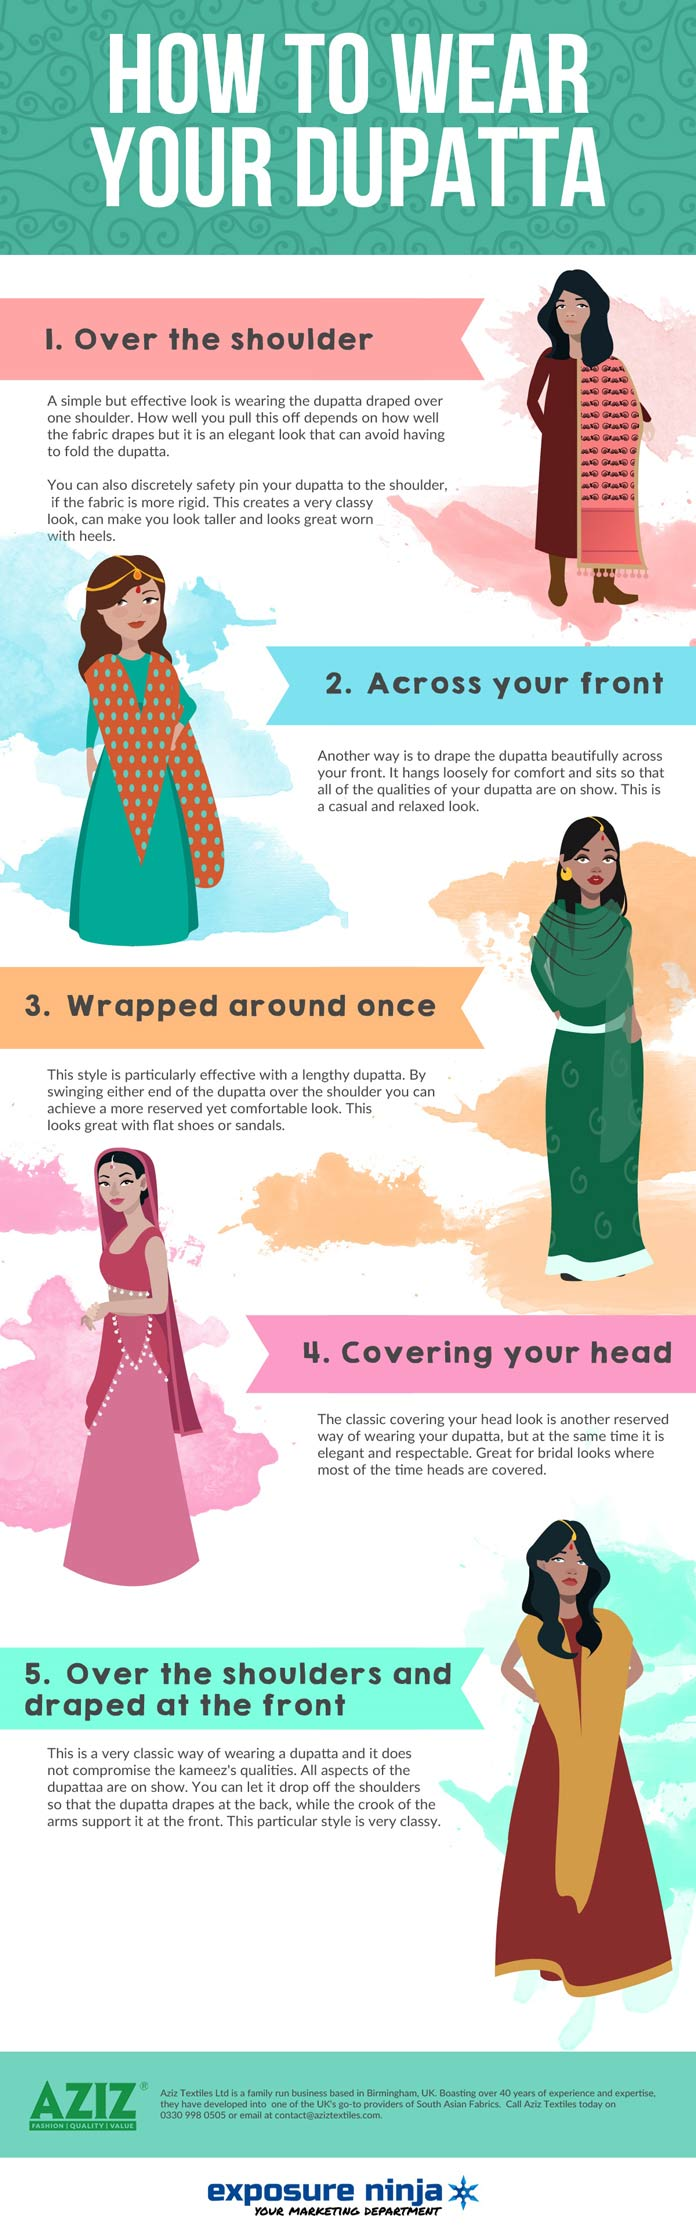 How-To-Wear-Dupatta-Infographic